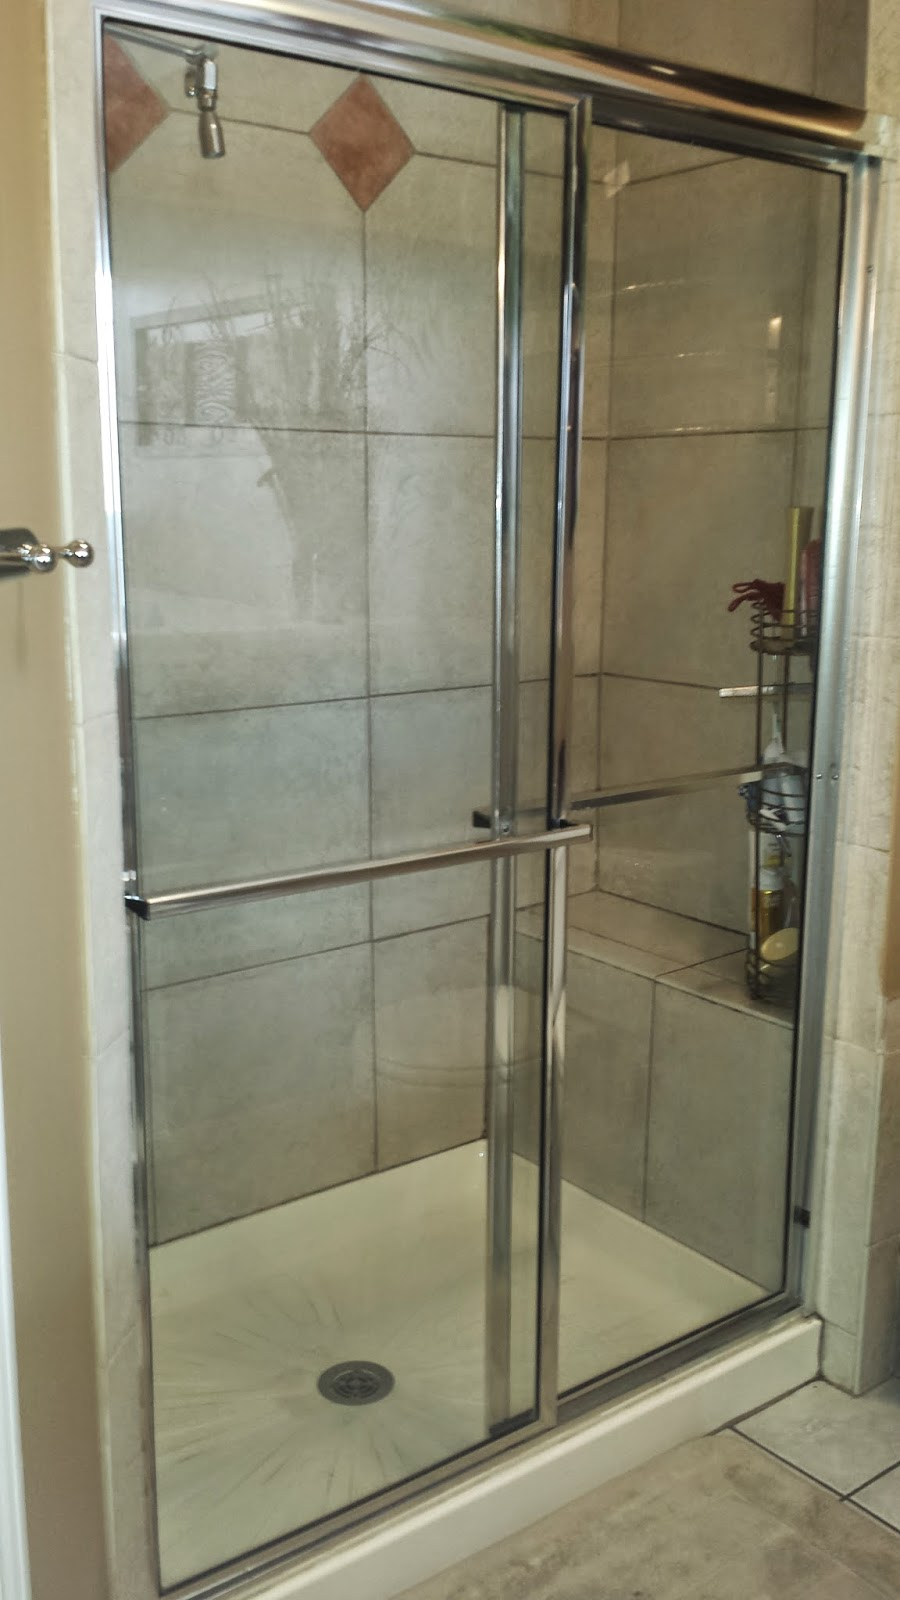 Flitz really does work on almost everything these shower doors are from my house the picture on the left is from 2001 the year we bought the house the doors were 10 years old in this photo vtopaller Images